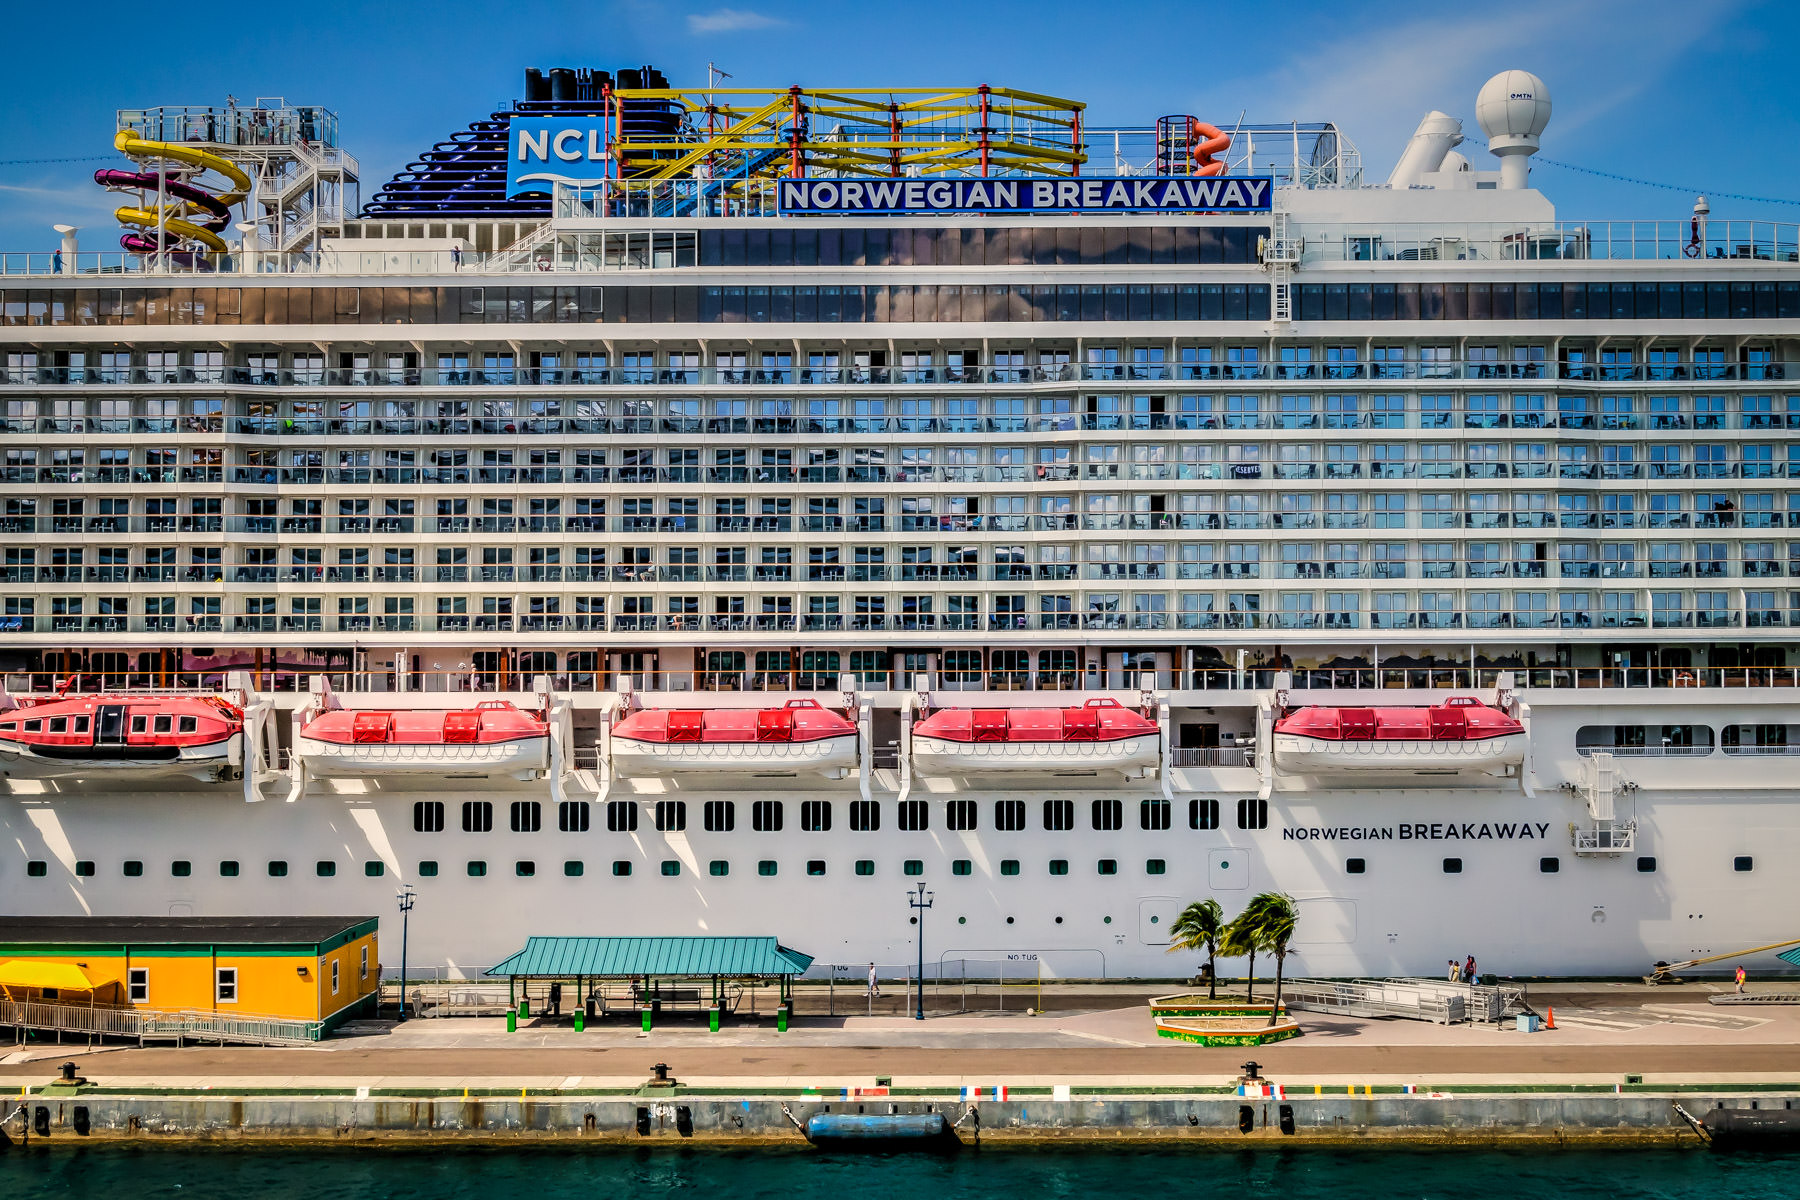 Detail of the midsection of the cruise ship Norwegian Breakaway, docked at a pier in Nassau, Bahamas.